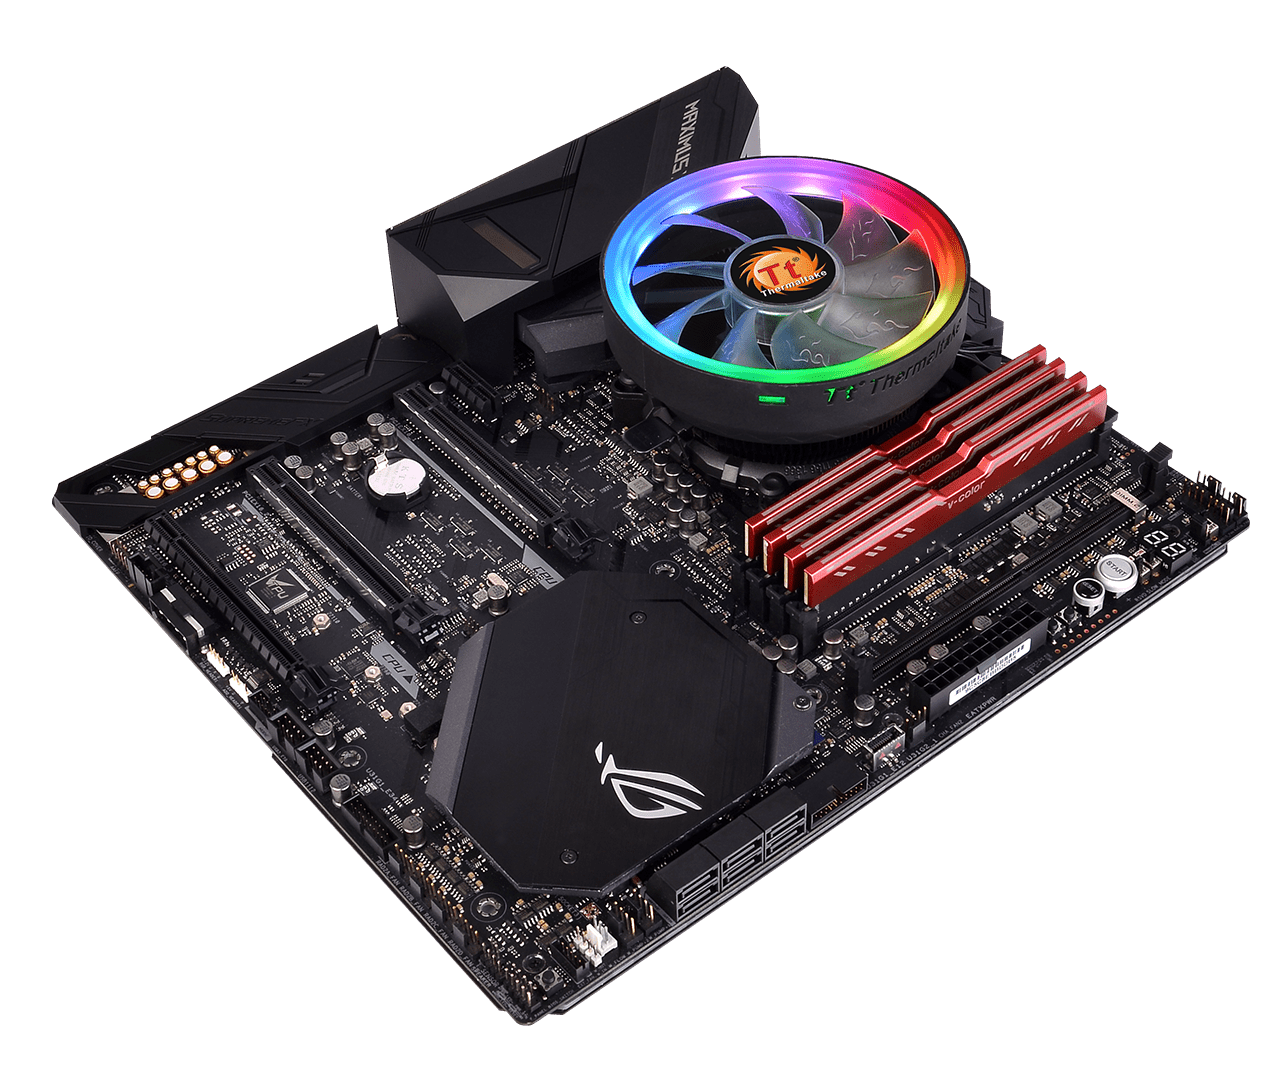 Thermaltake Brings Upgraded CPU Cooler To The Lower-End Spectrum; New UX100 ARGB Features RGB Lighting